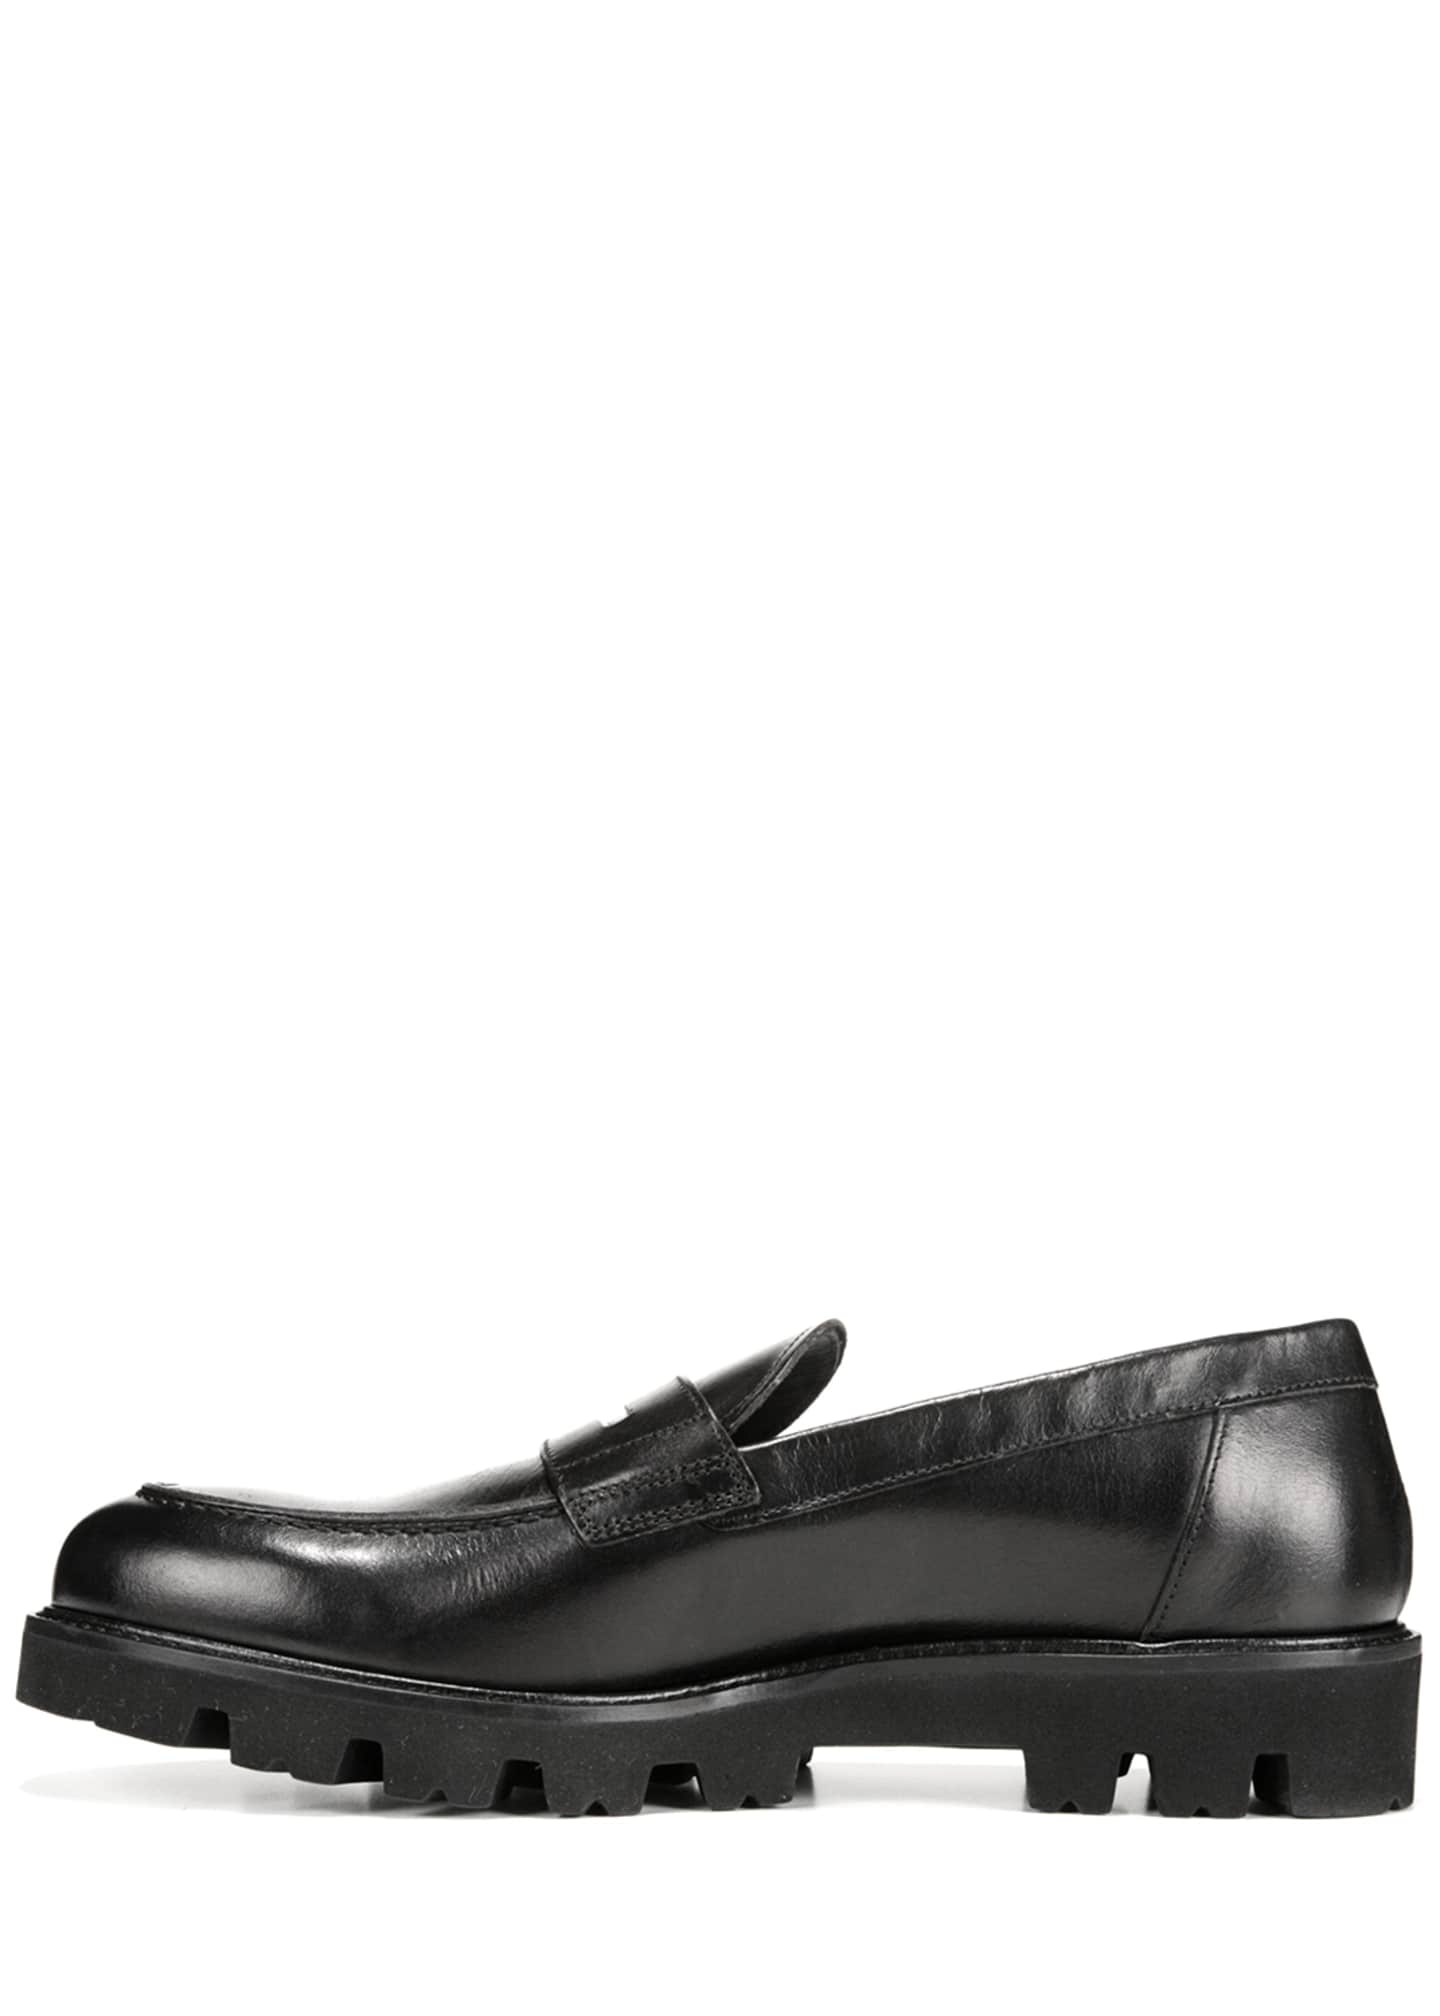 Image 2 of 5: Men's Comrade Leather Lug-Sole Loafer